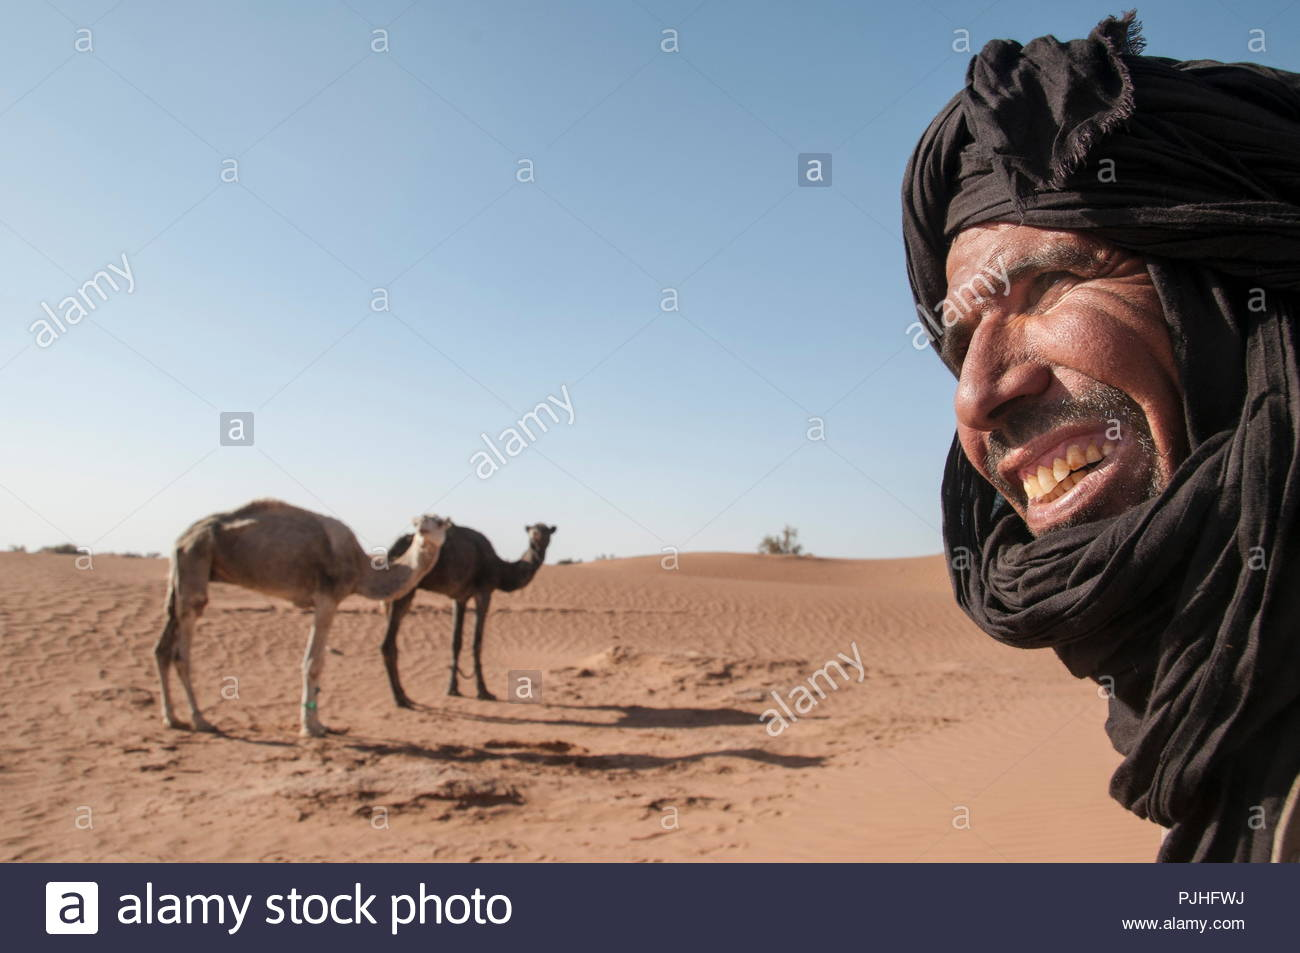 Morocco, Western sahara, camel driver and his two camels - Stock Image